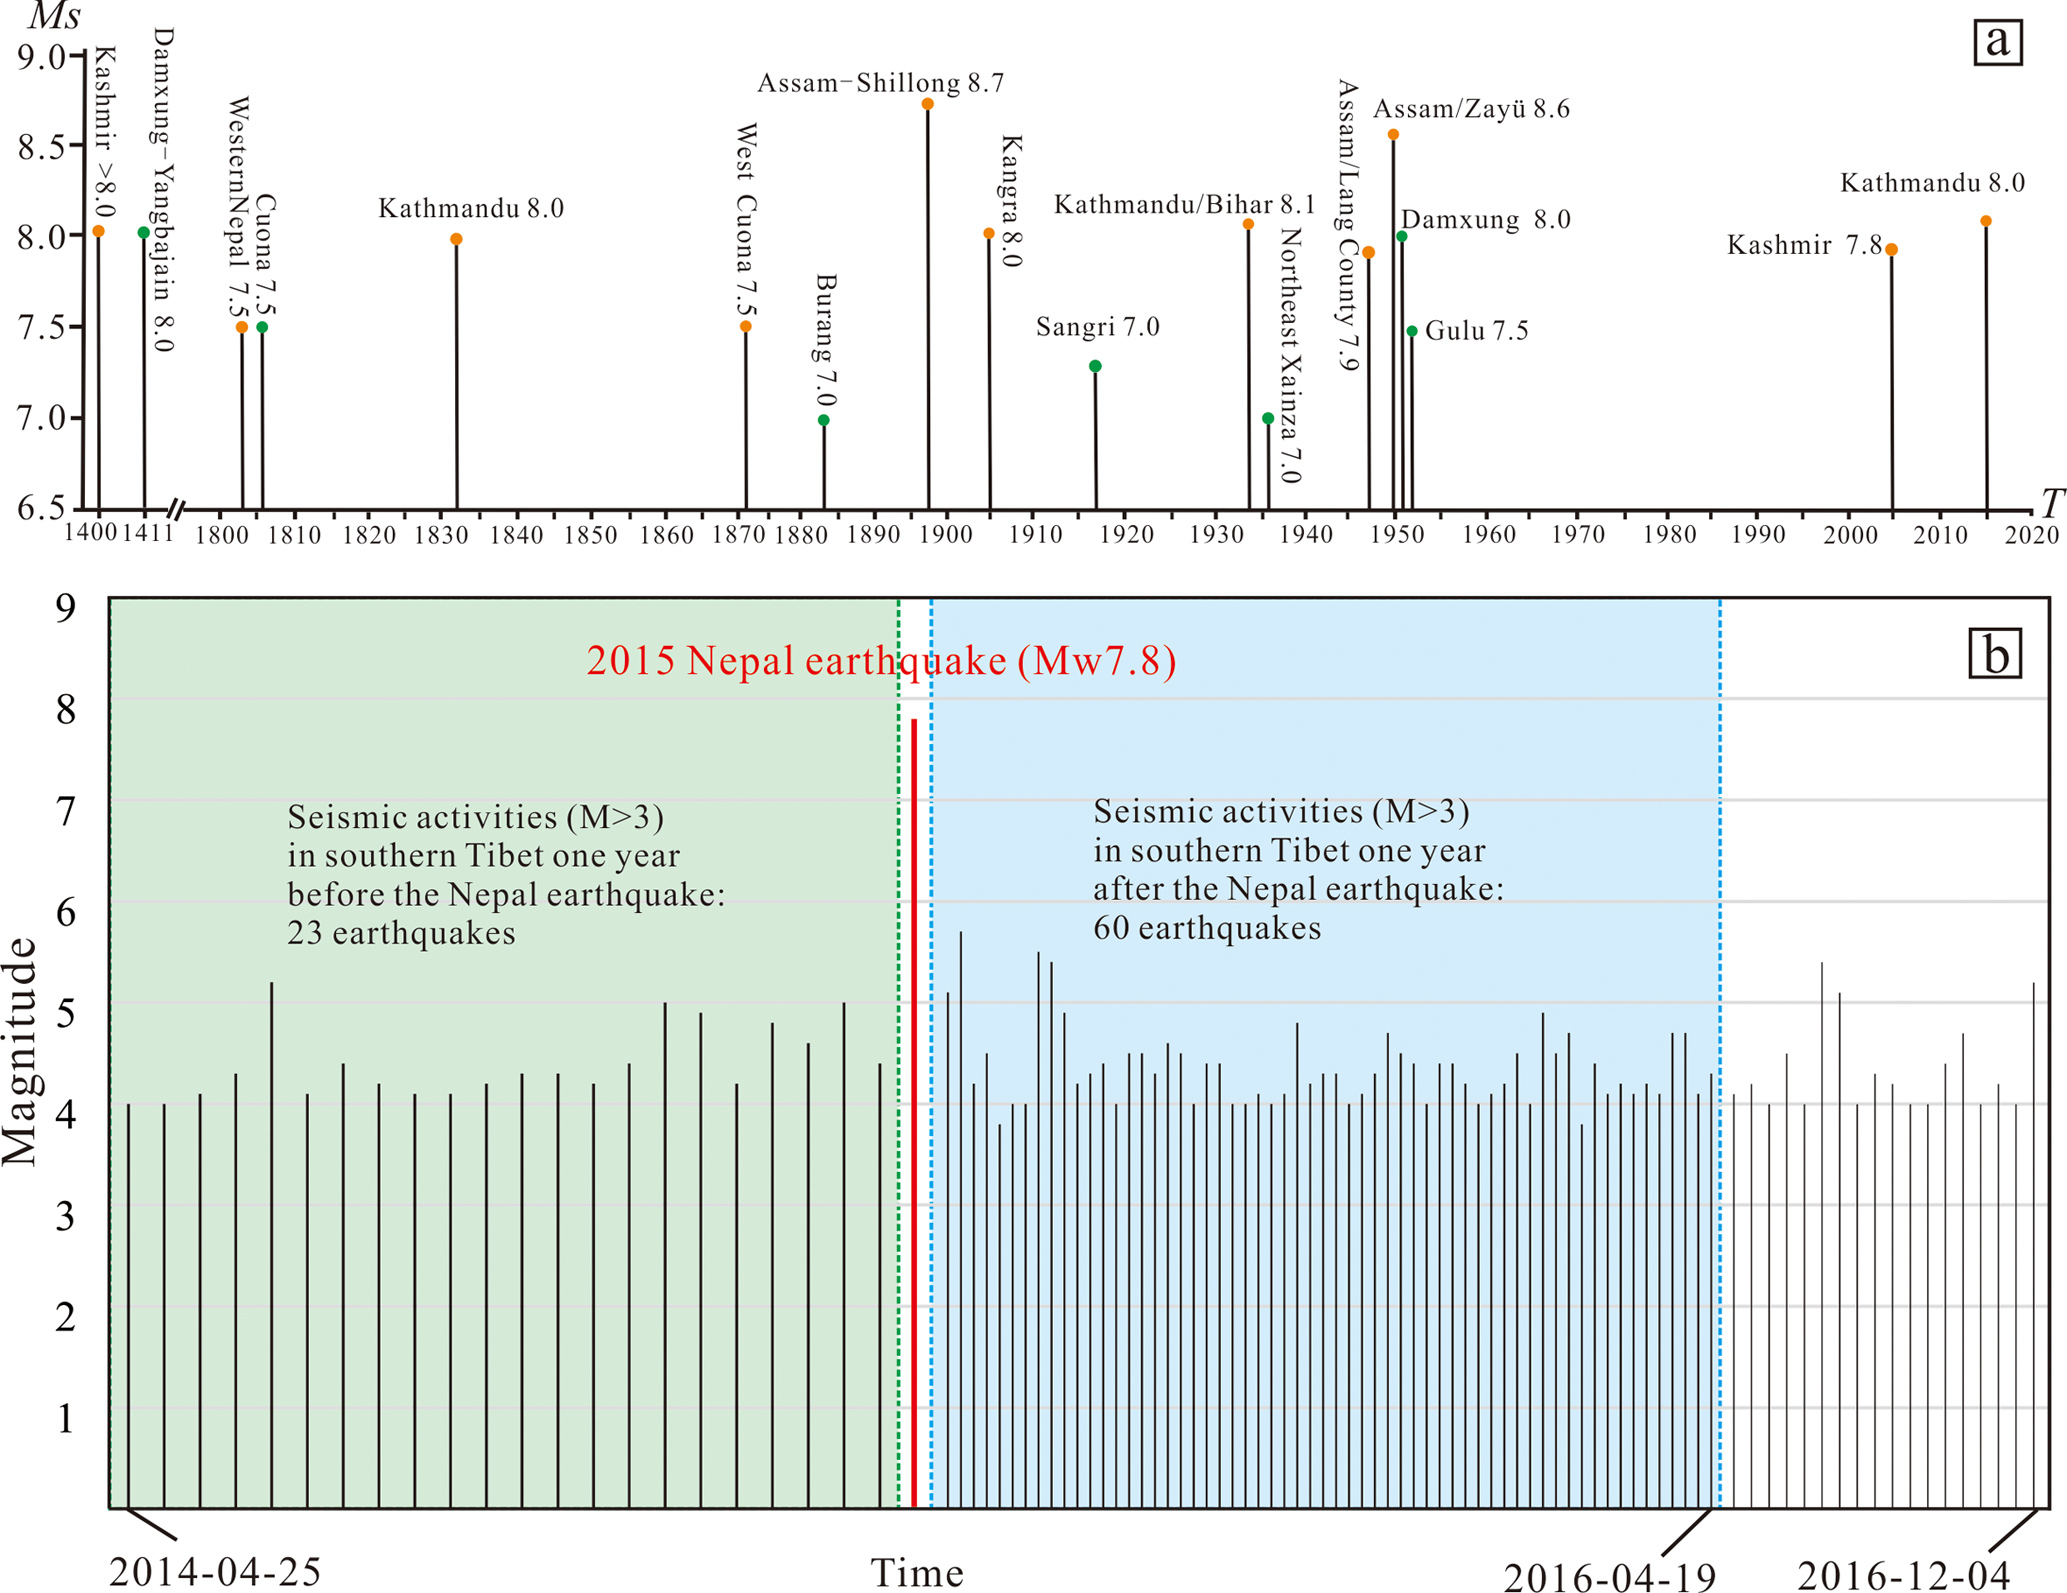 NHESS - Damage induced by the 25 April 2015 Nepal earthquake